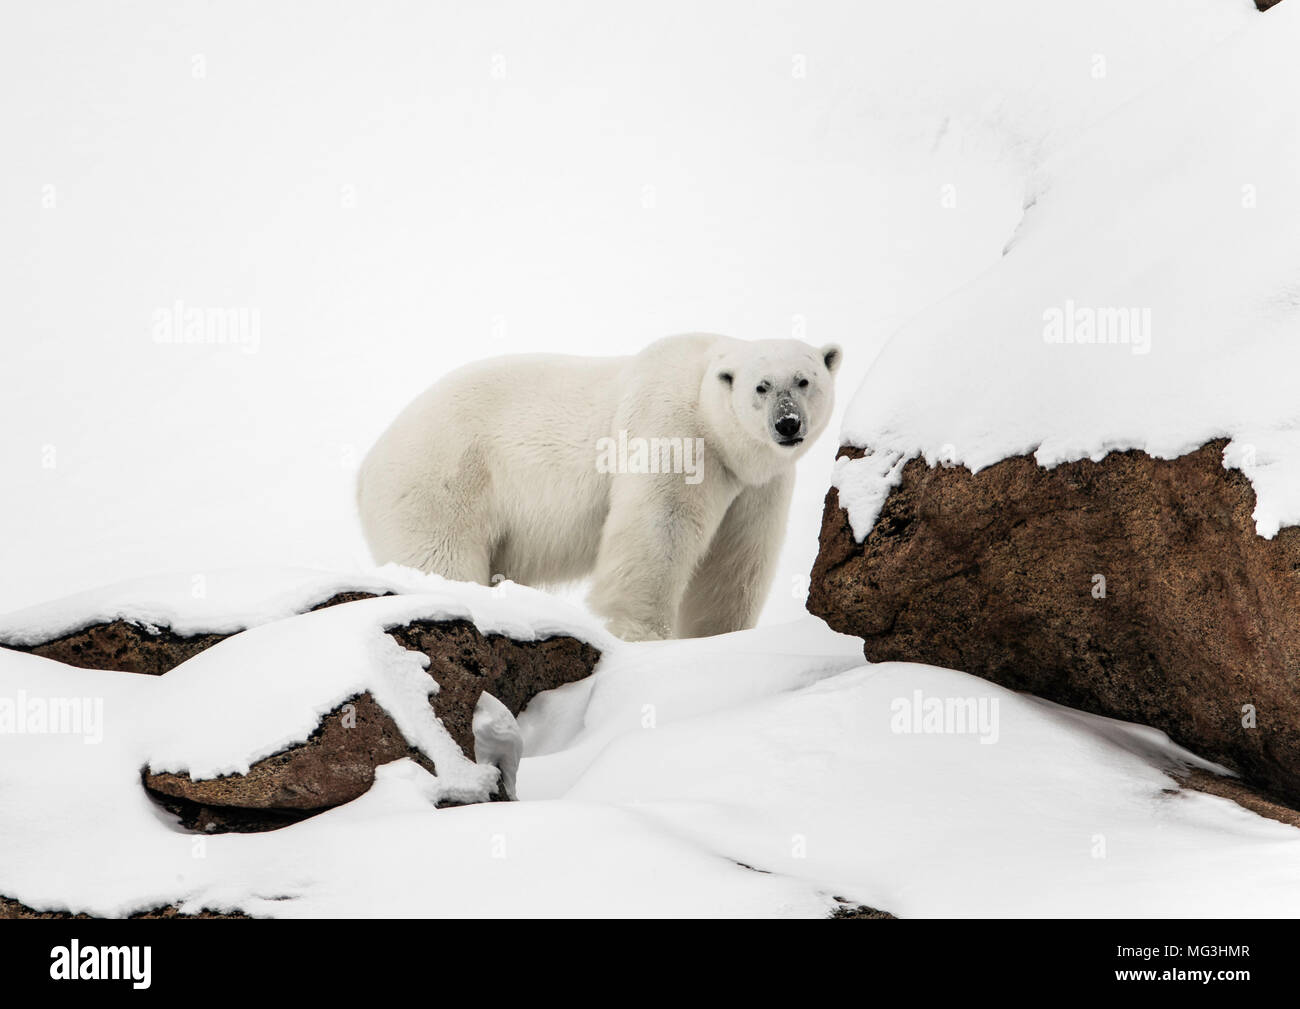 Solitary large male polar bear on the hillside.  Baffin, Nunavut, Canada, arctic - Stock Image